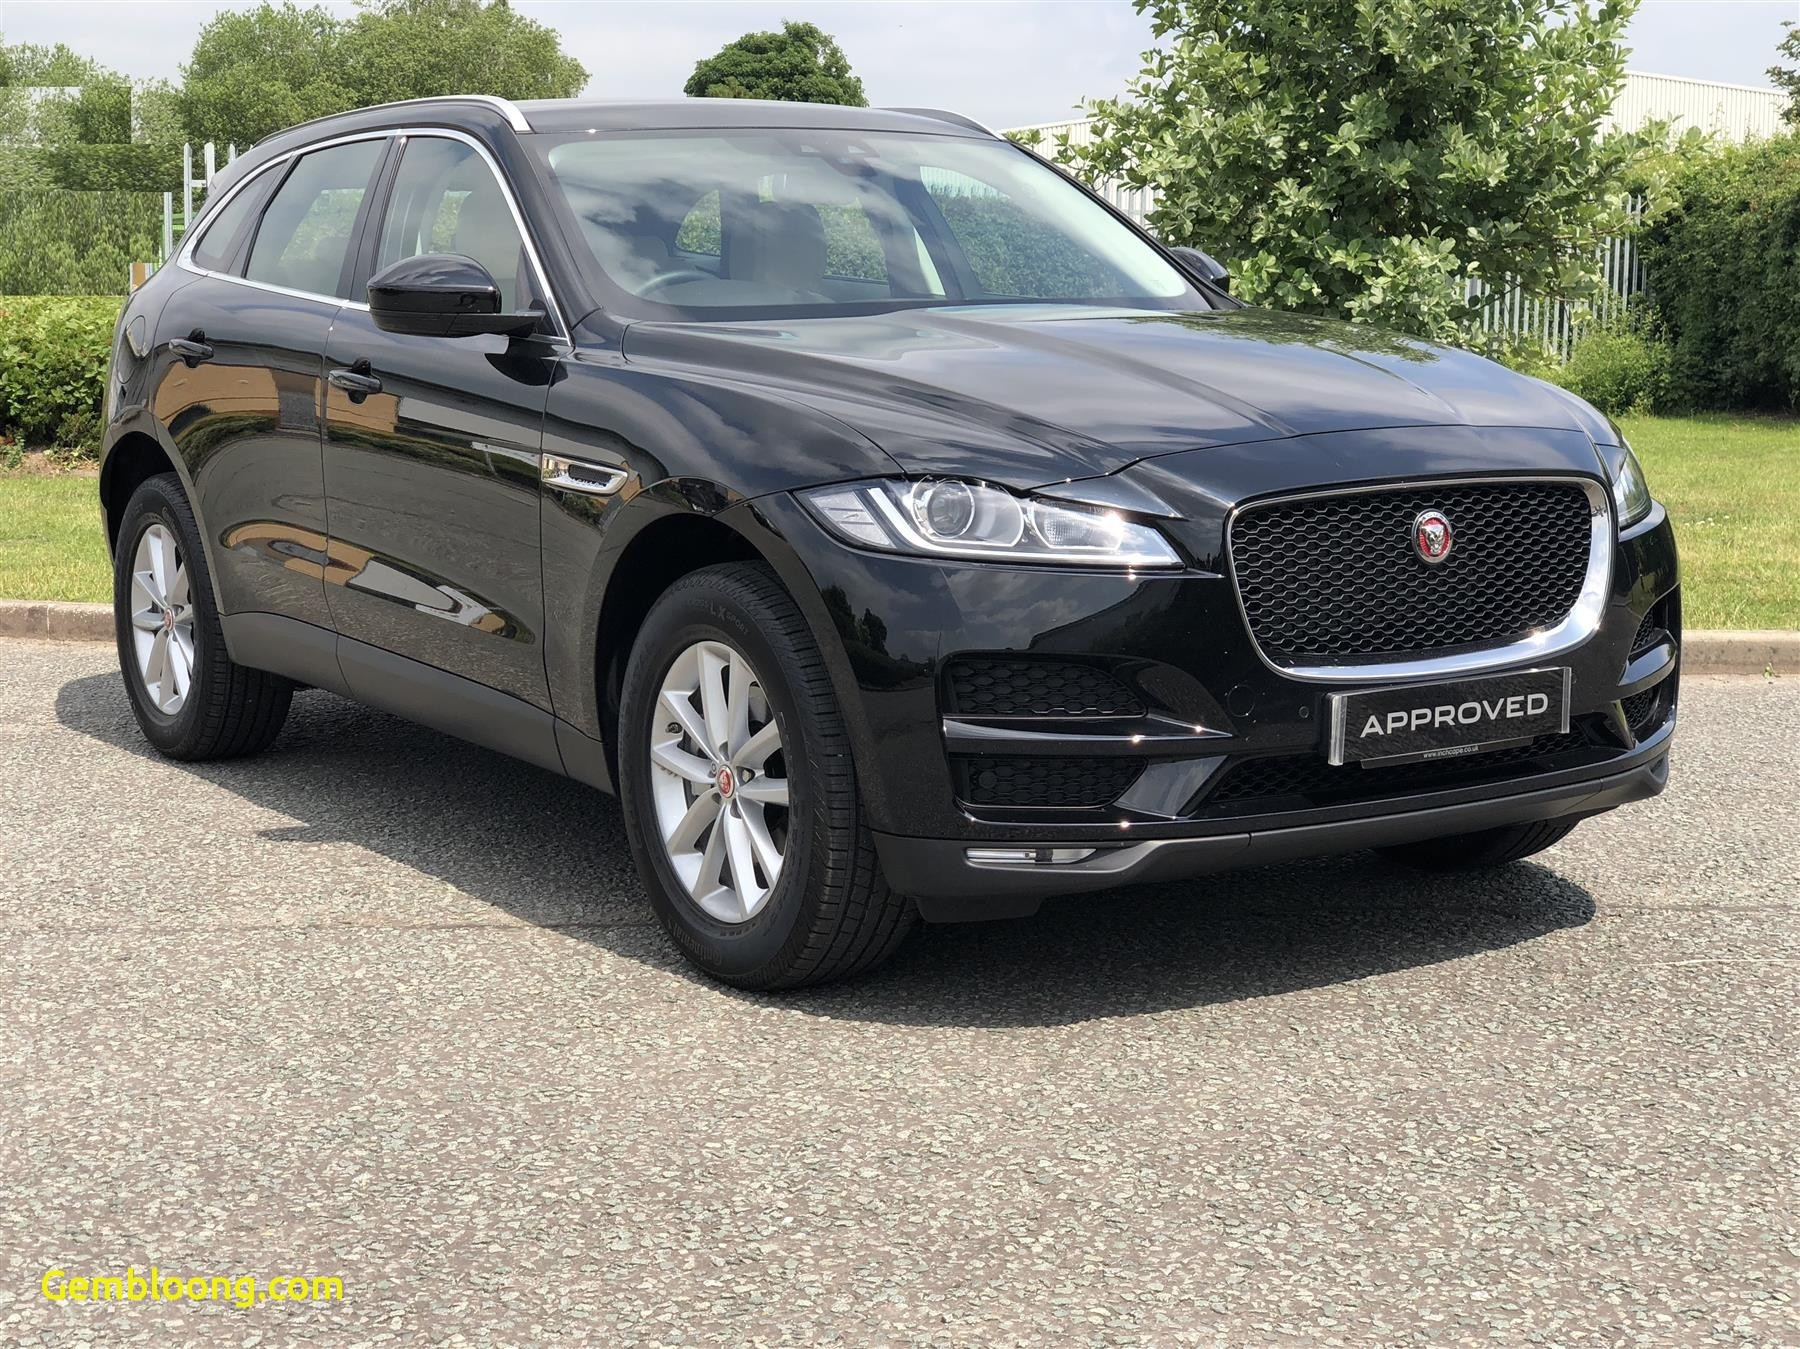 sell used car to dealer unique used cars near me private seller luxury used 2018 jaguar